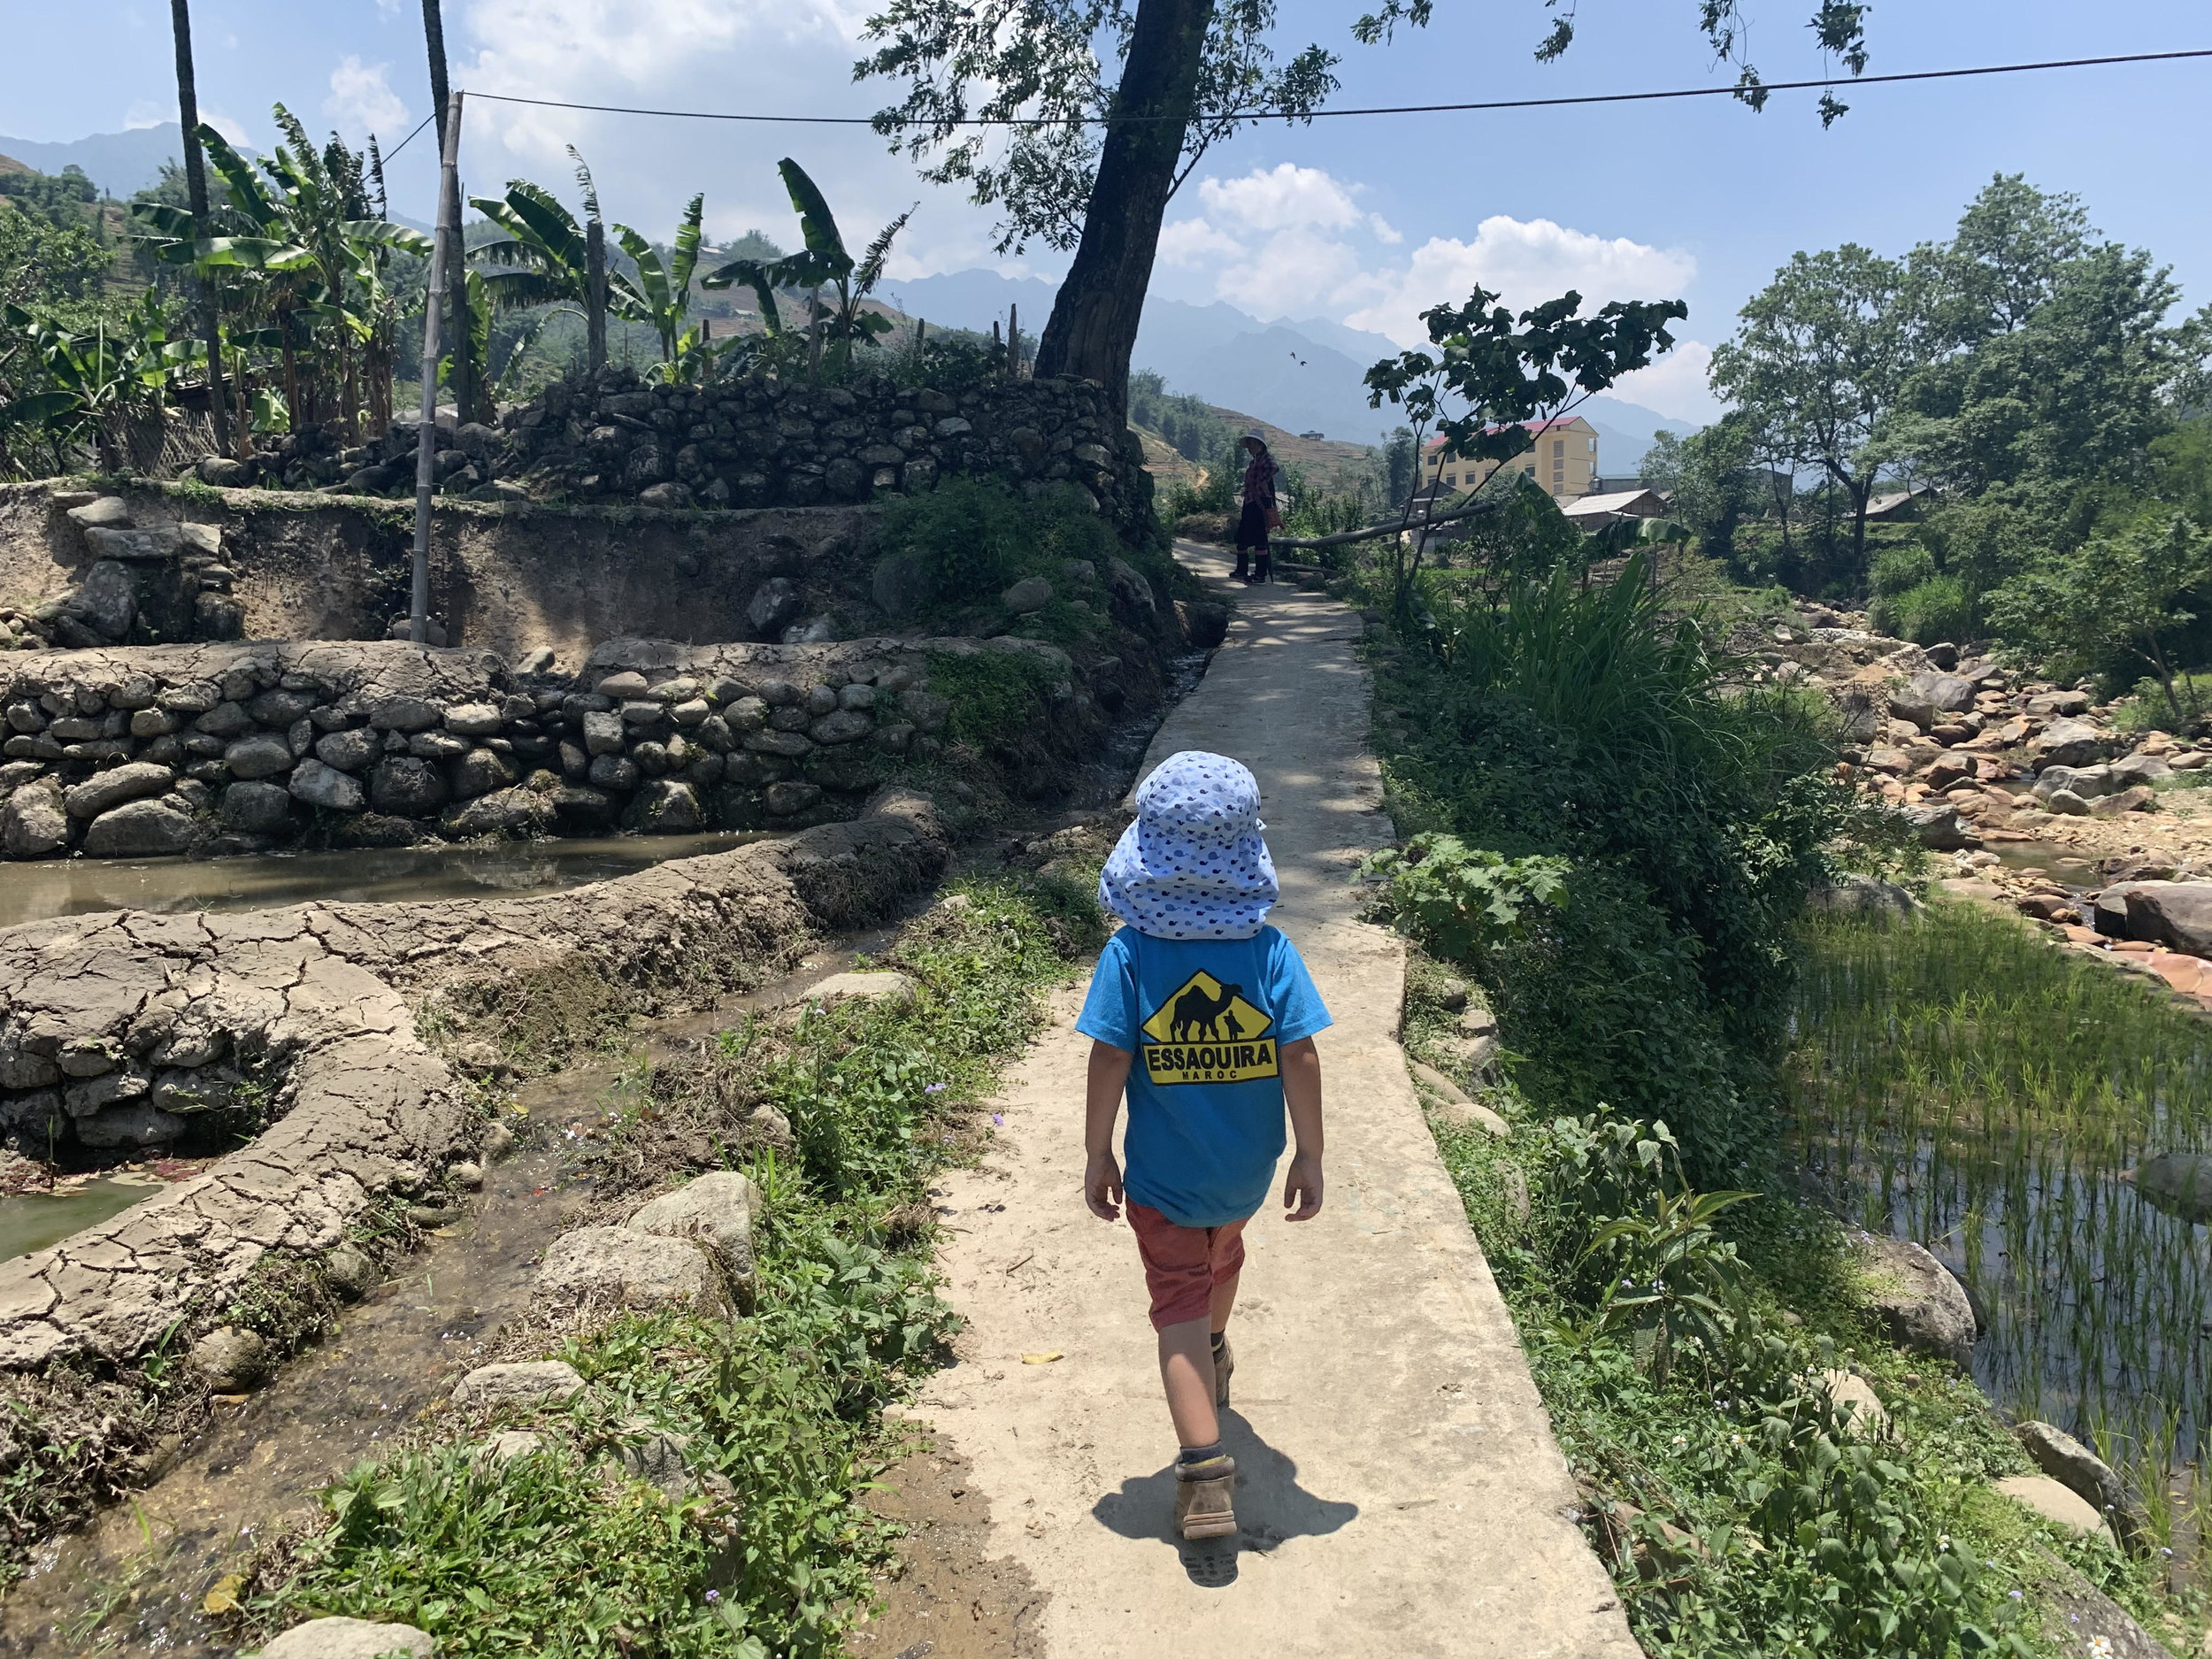 3-year old Sam walks along a narrow path with mountains in the distance